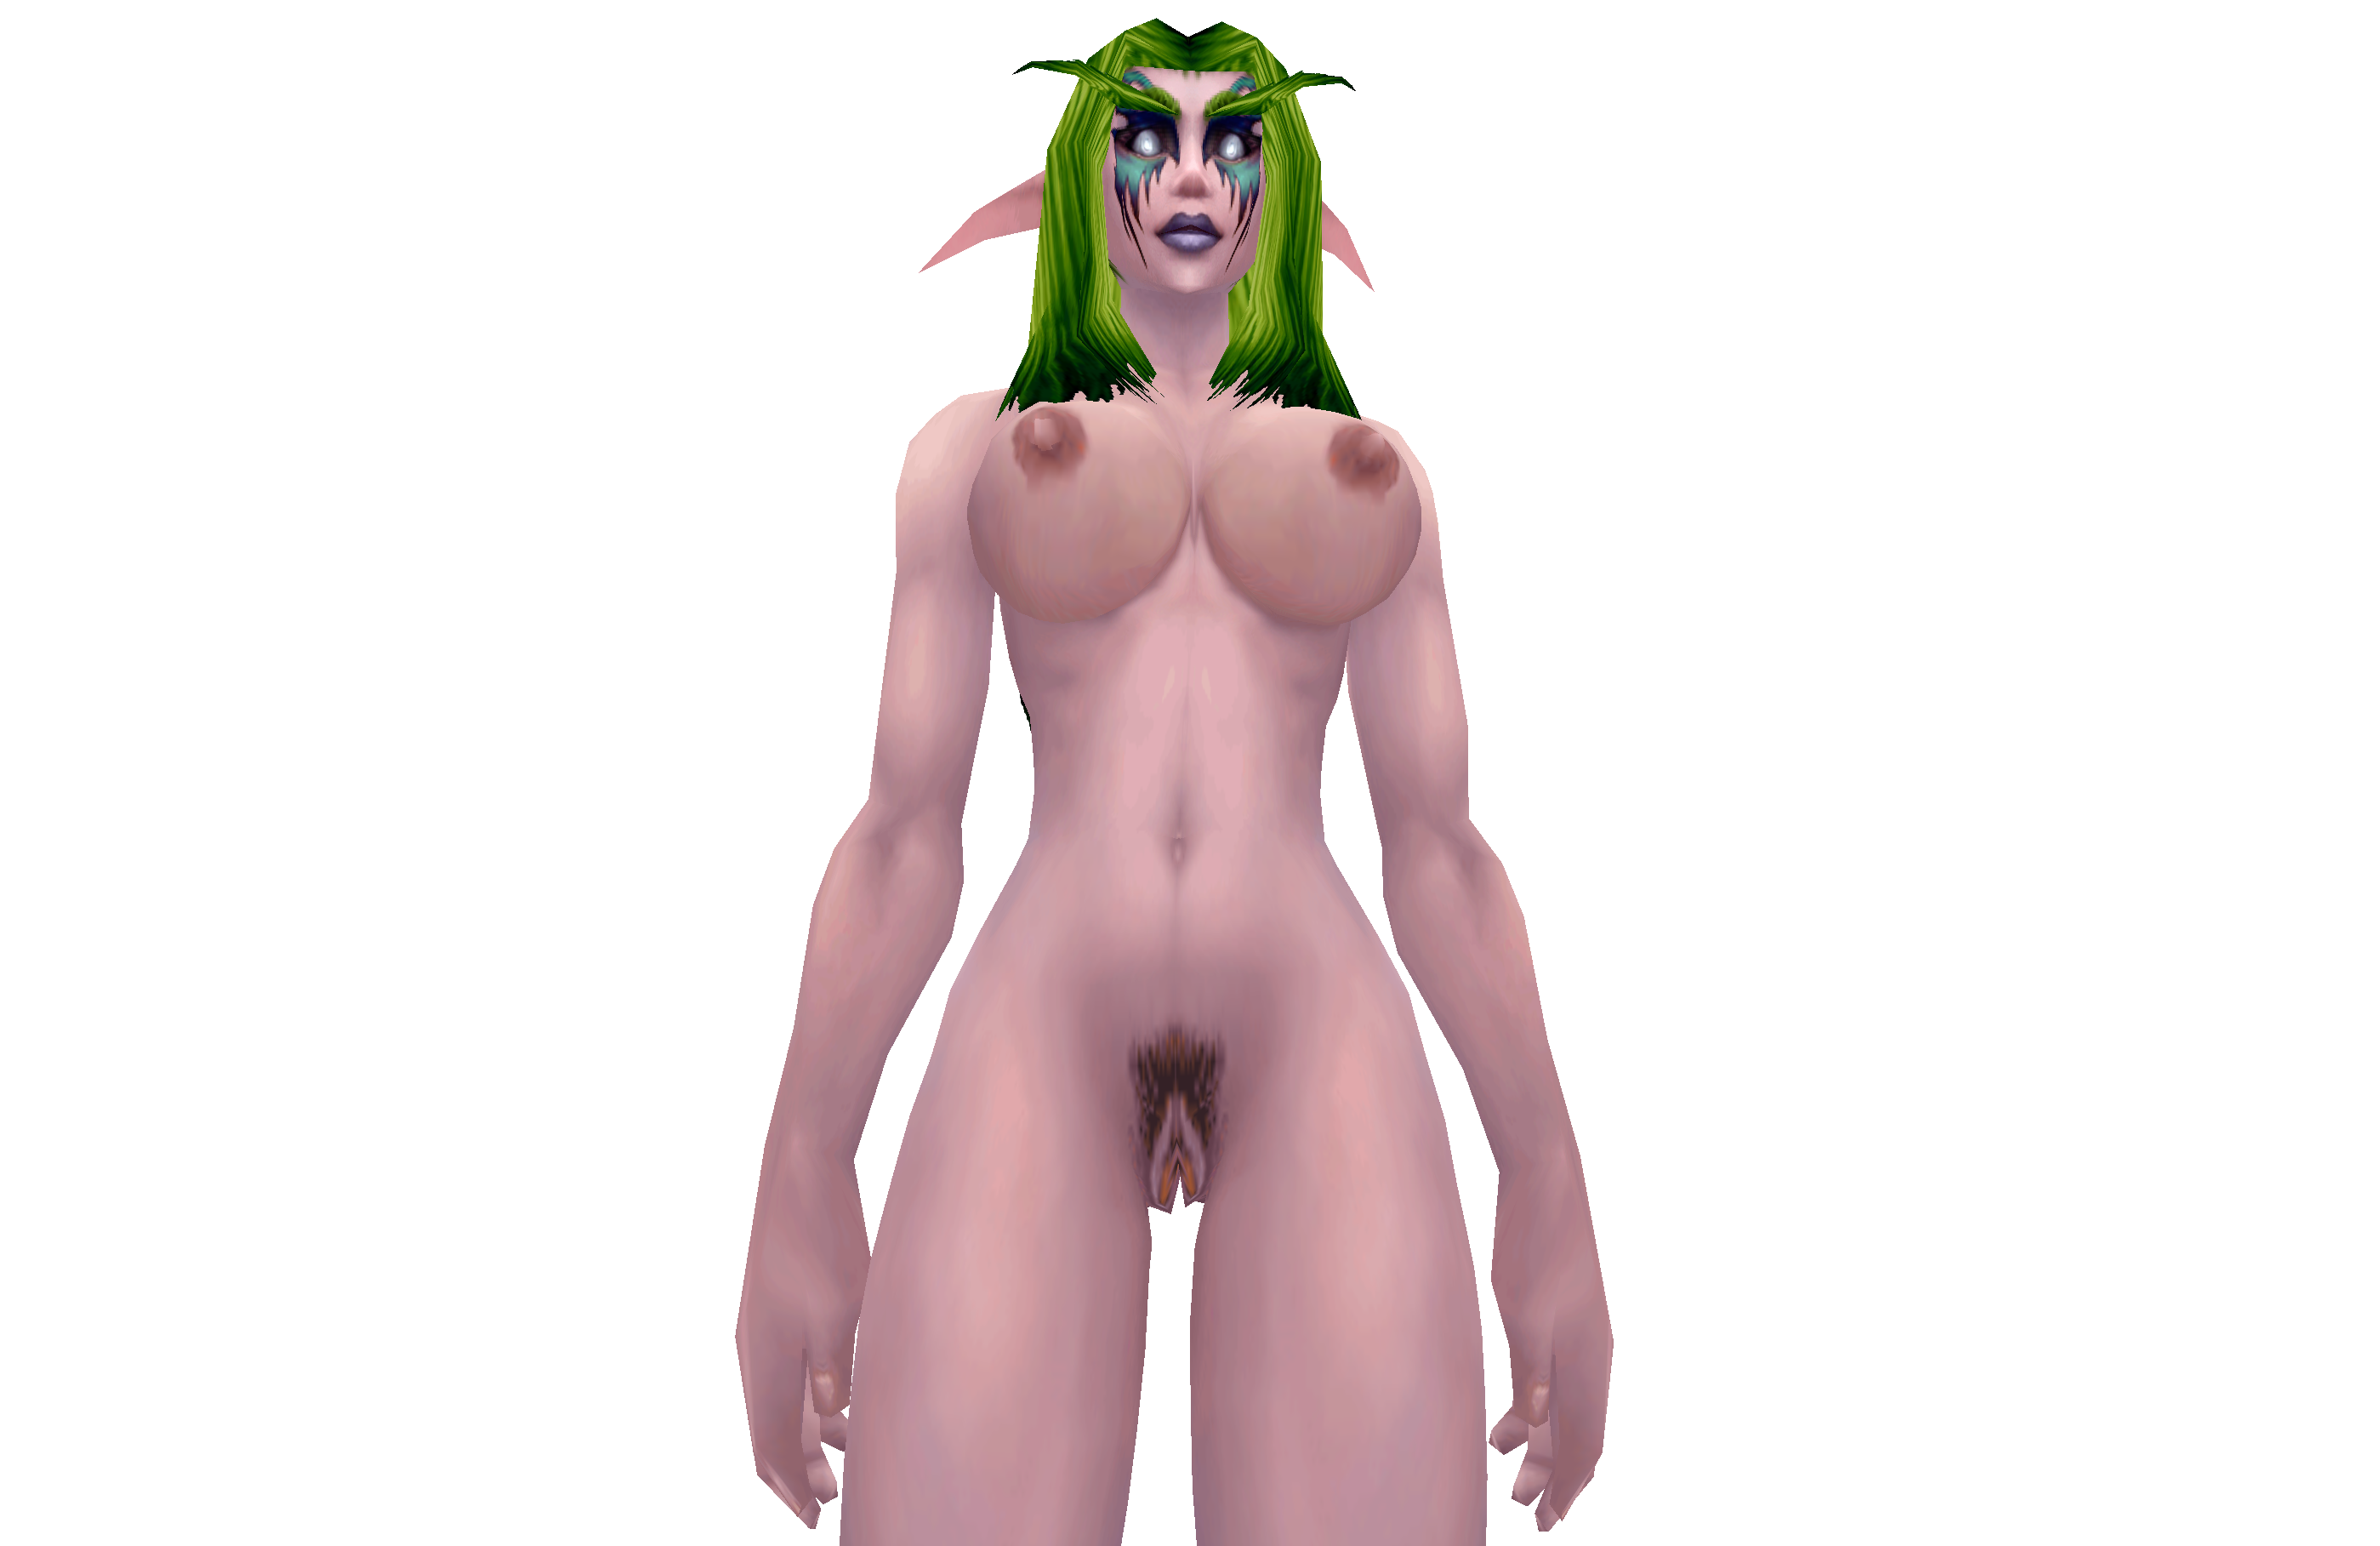 Warcraft nude skins having sex sex scene